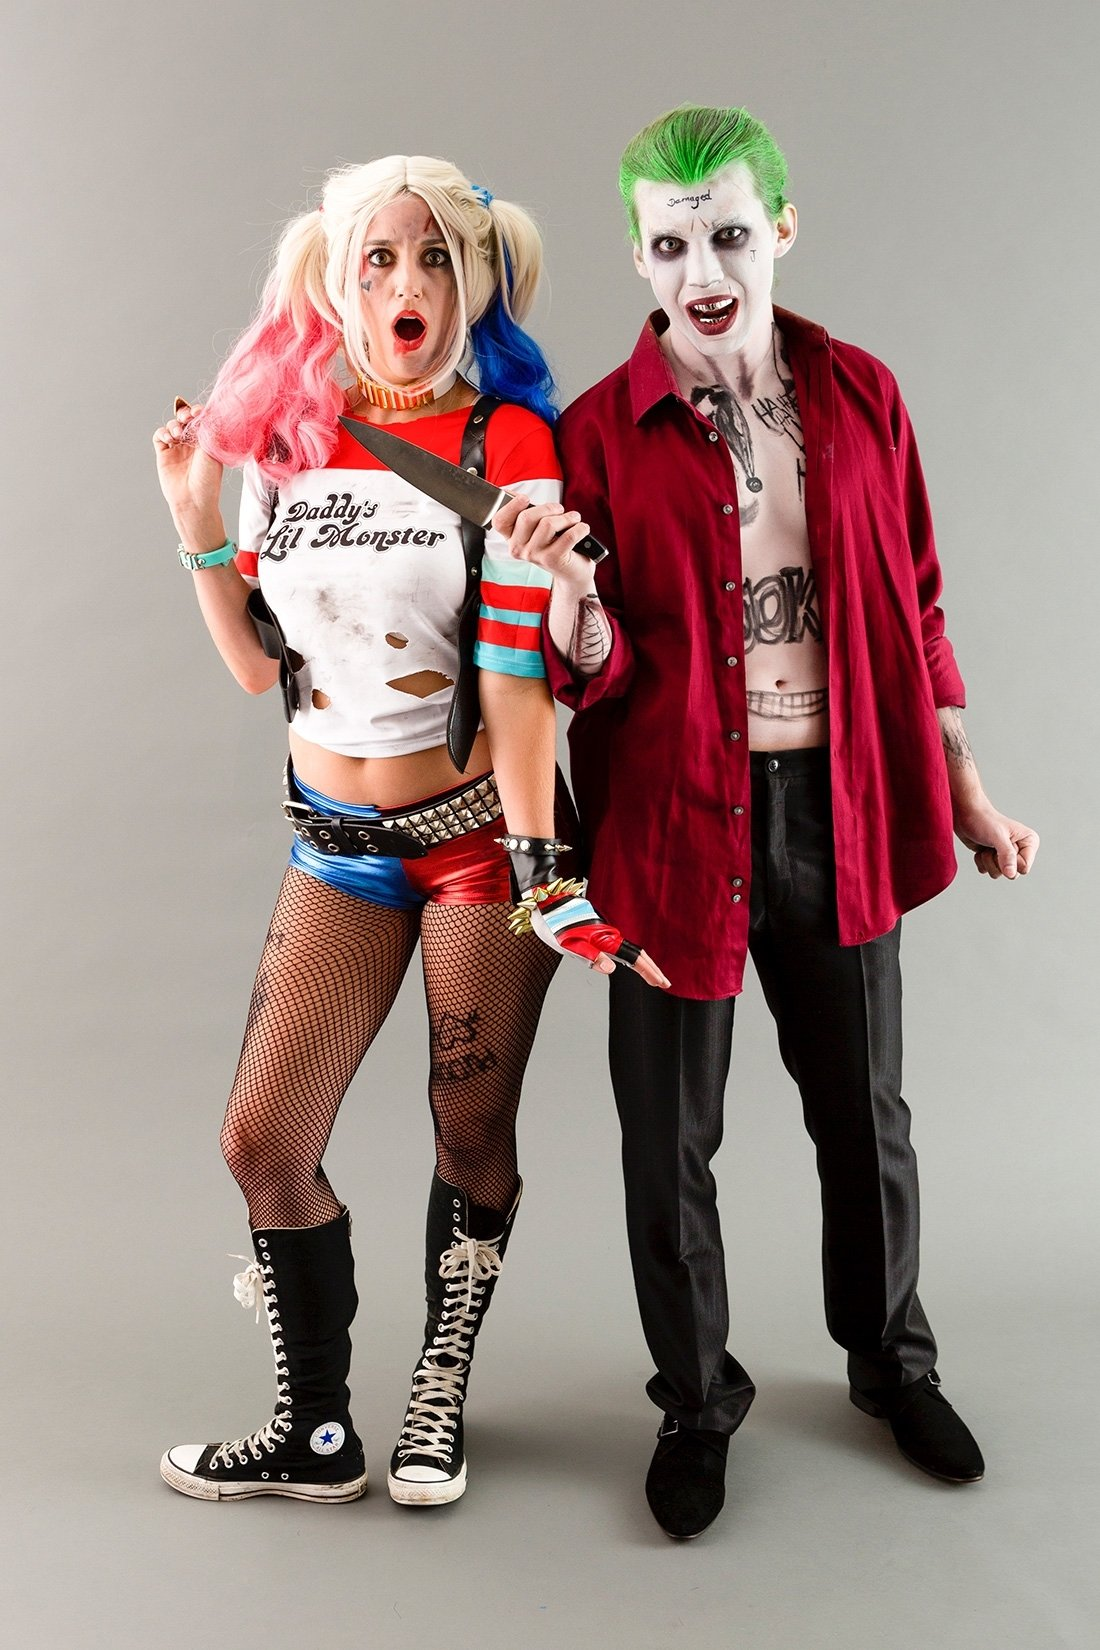 10 Stylish Cute Couples Halloween Costume Ideas cute couple halloween costumes ideas extraordinary ken and barbie 2021